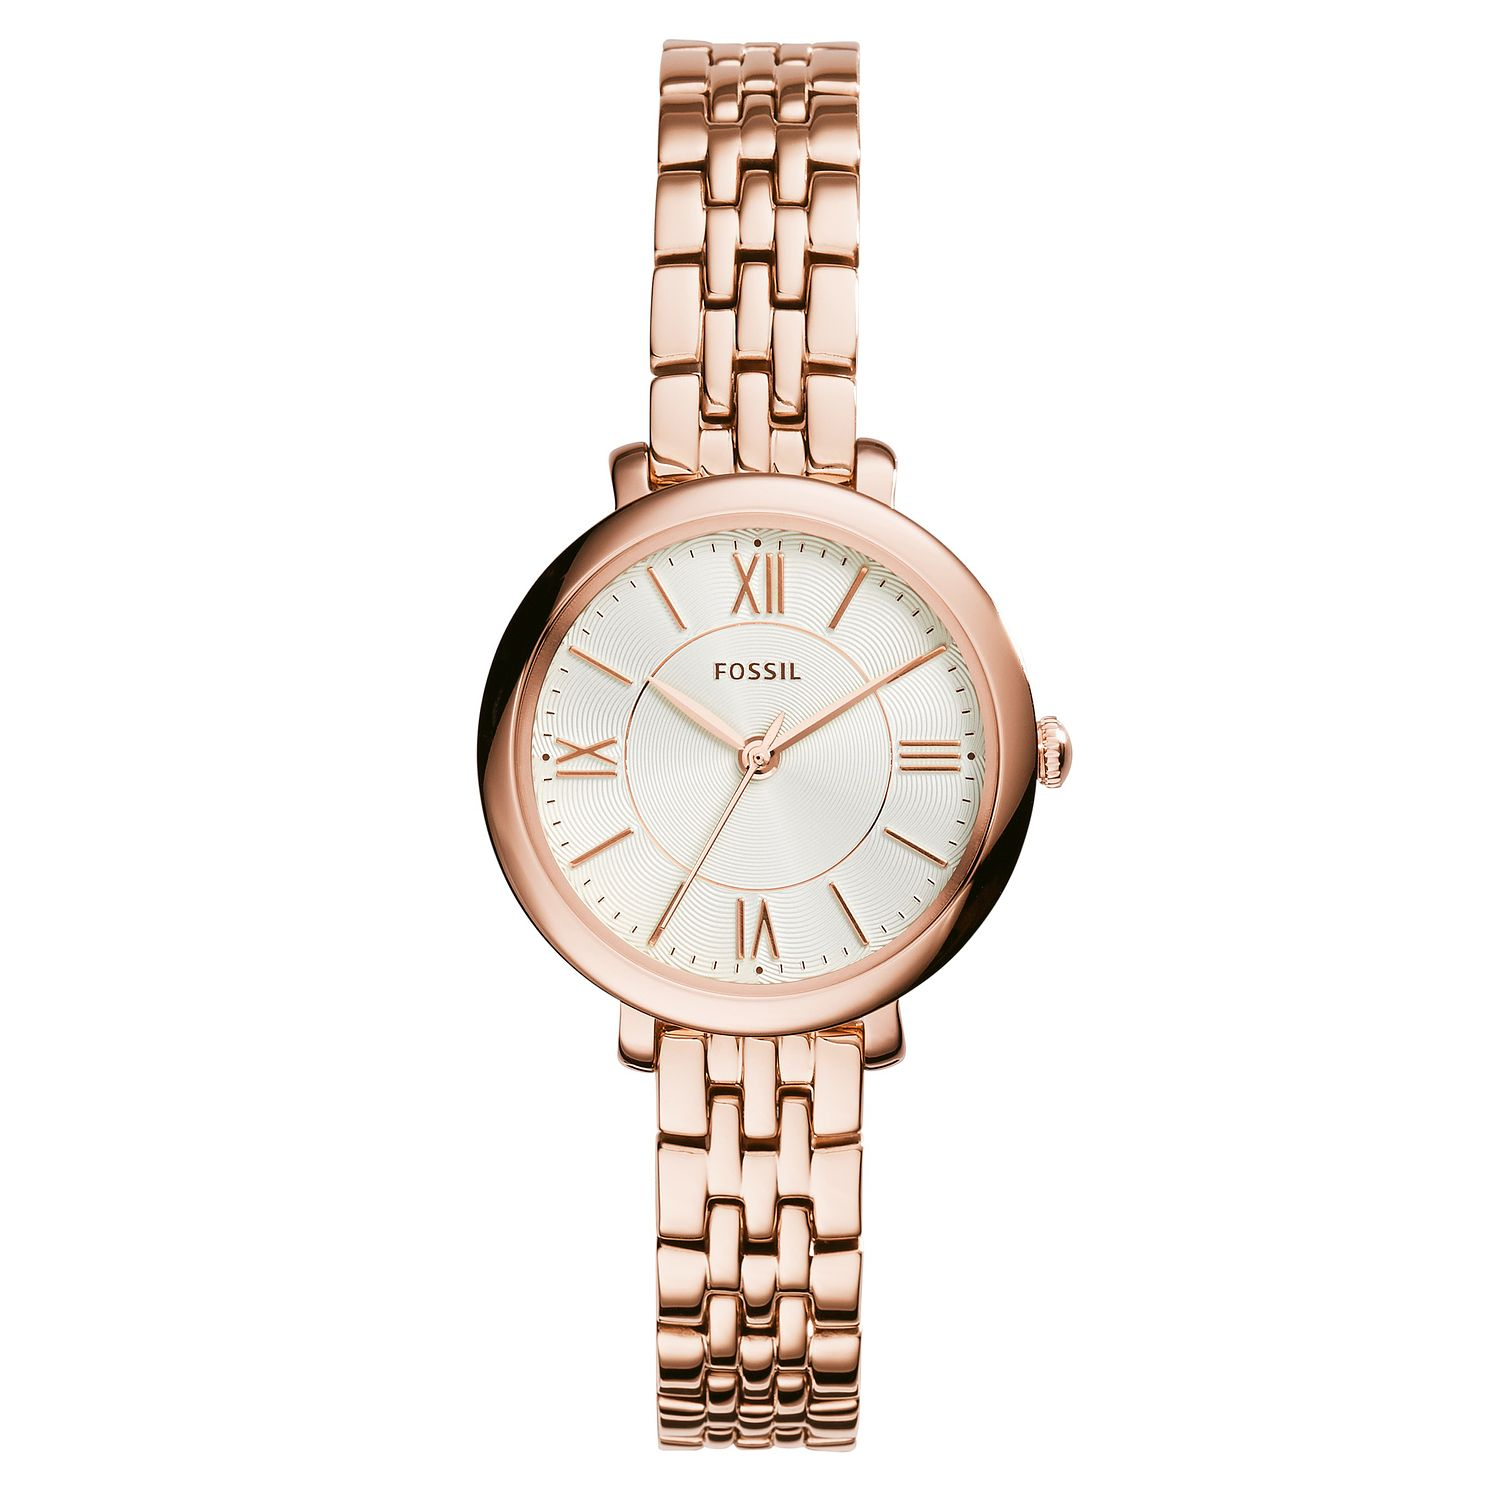 Fossil Ladies' Rose Gold Tone Bracelet Watch - Product number 3070913